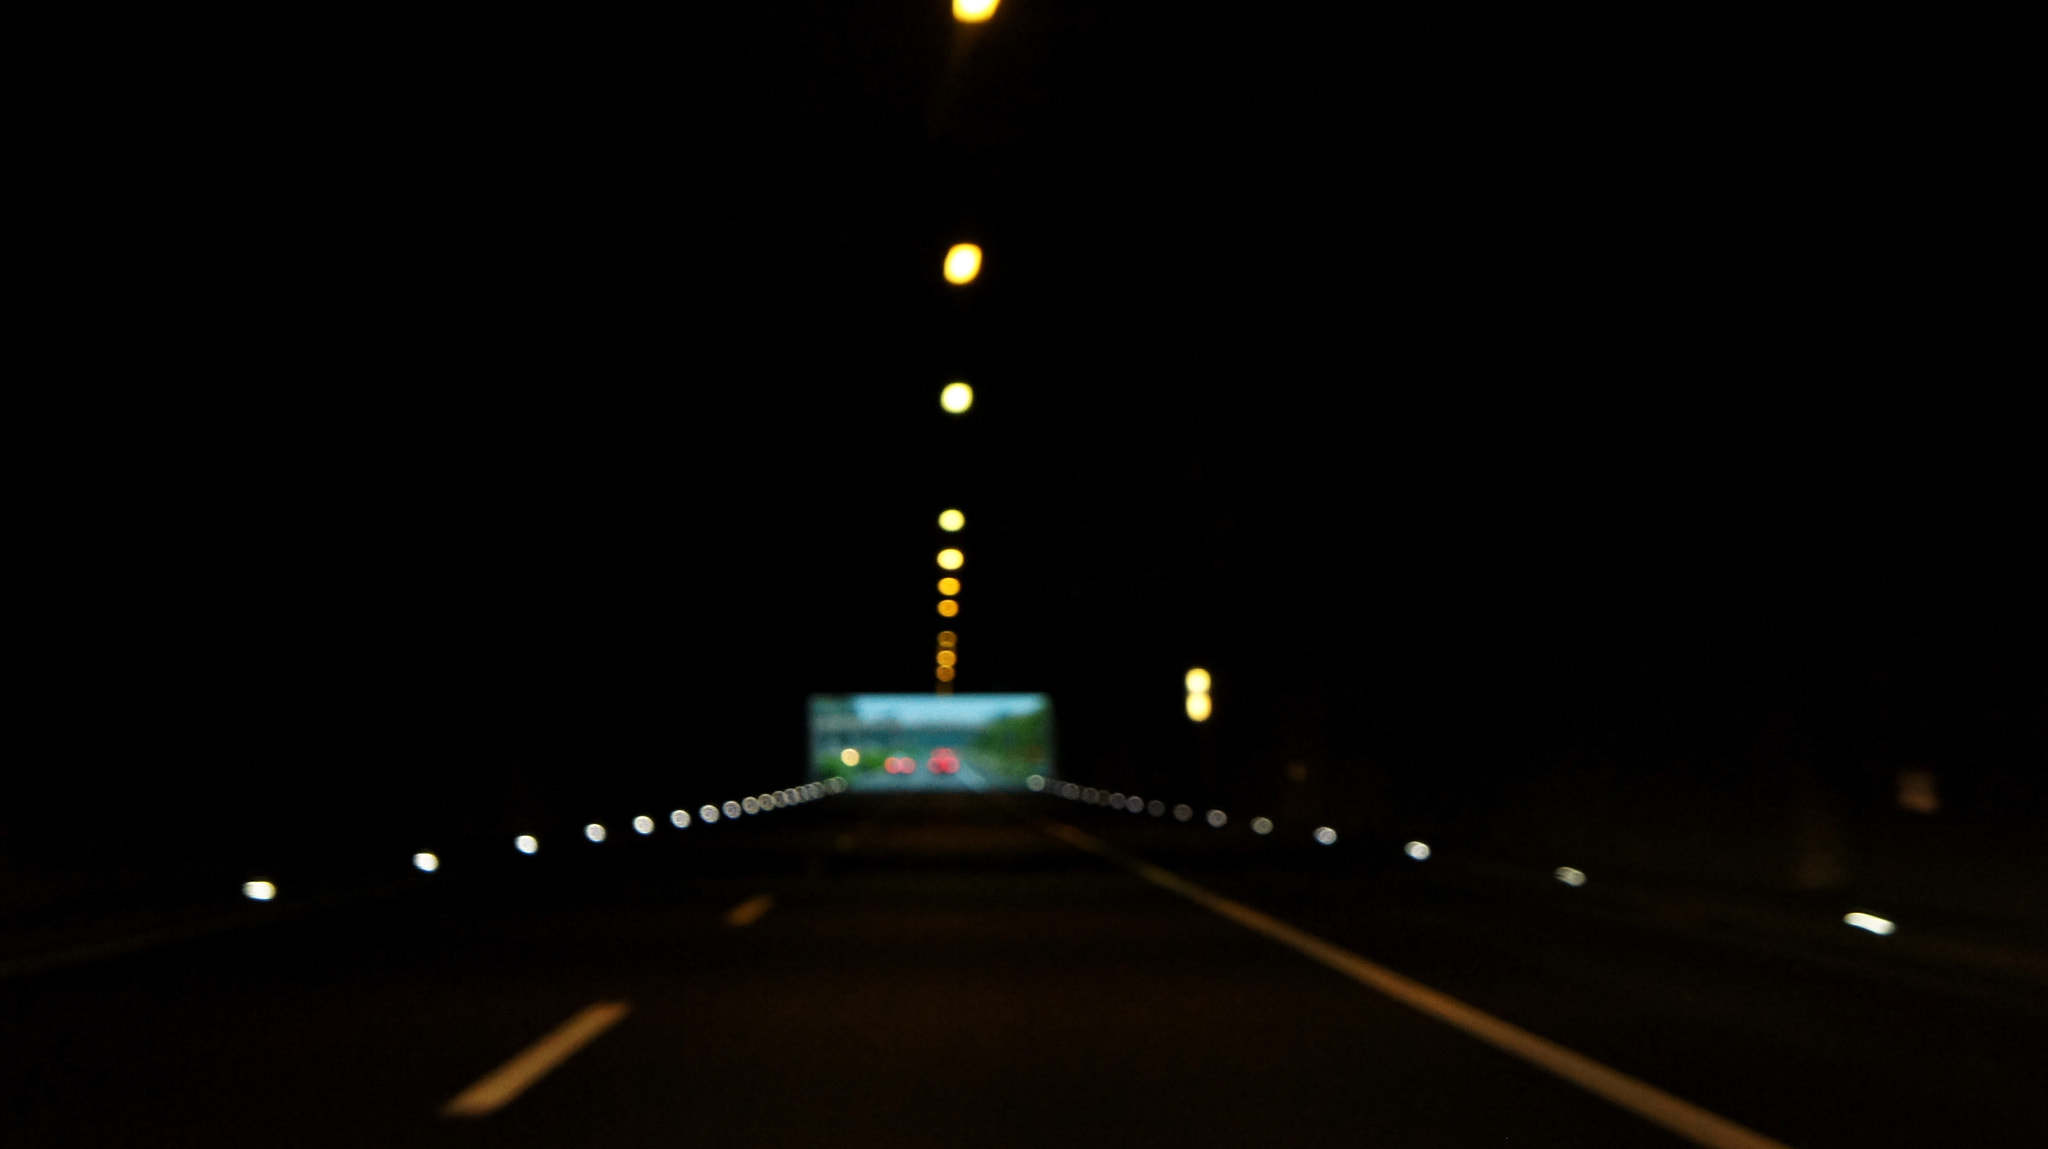 Photograph Tunnel by Hiwa  on 500px